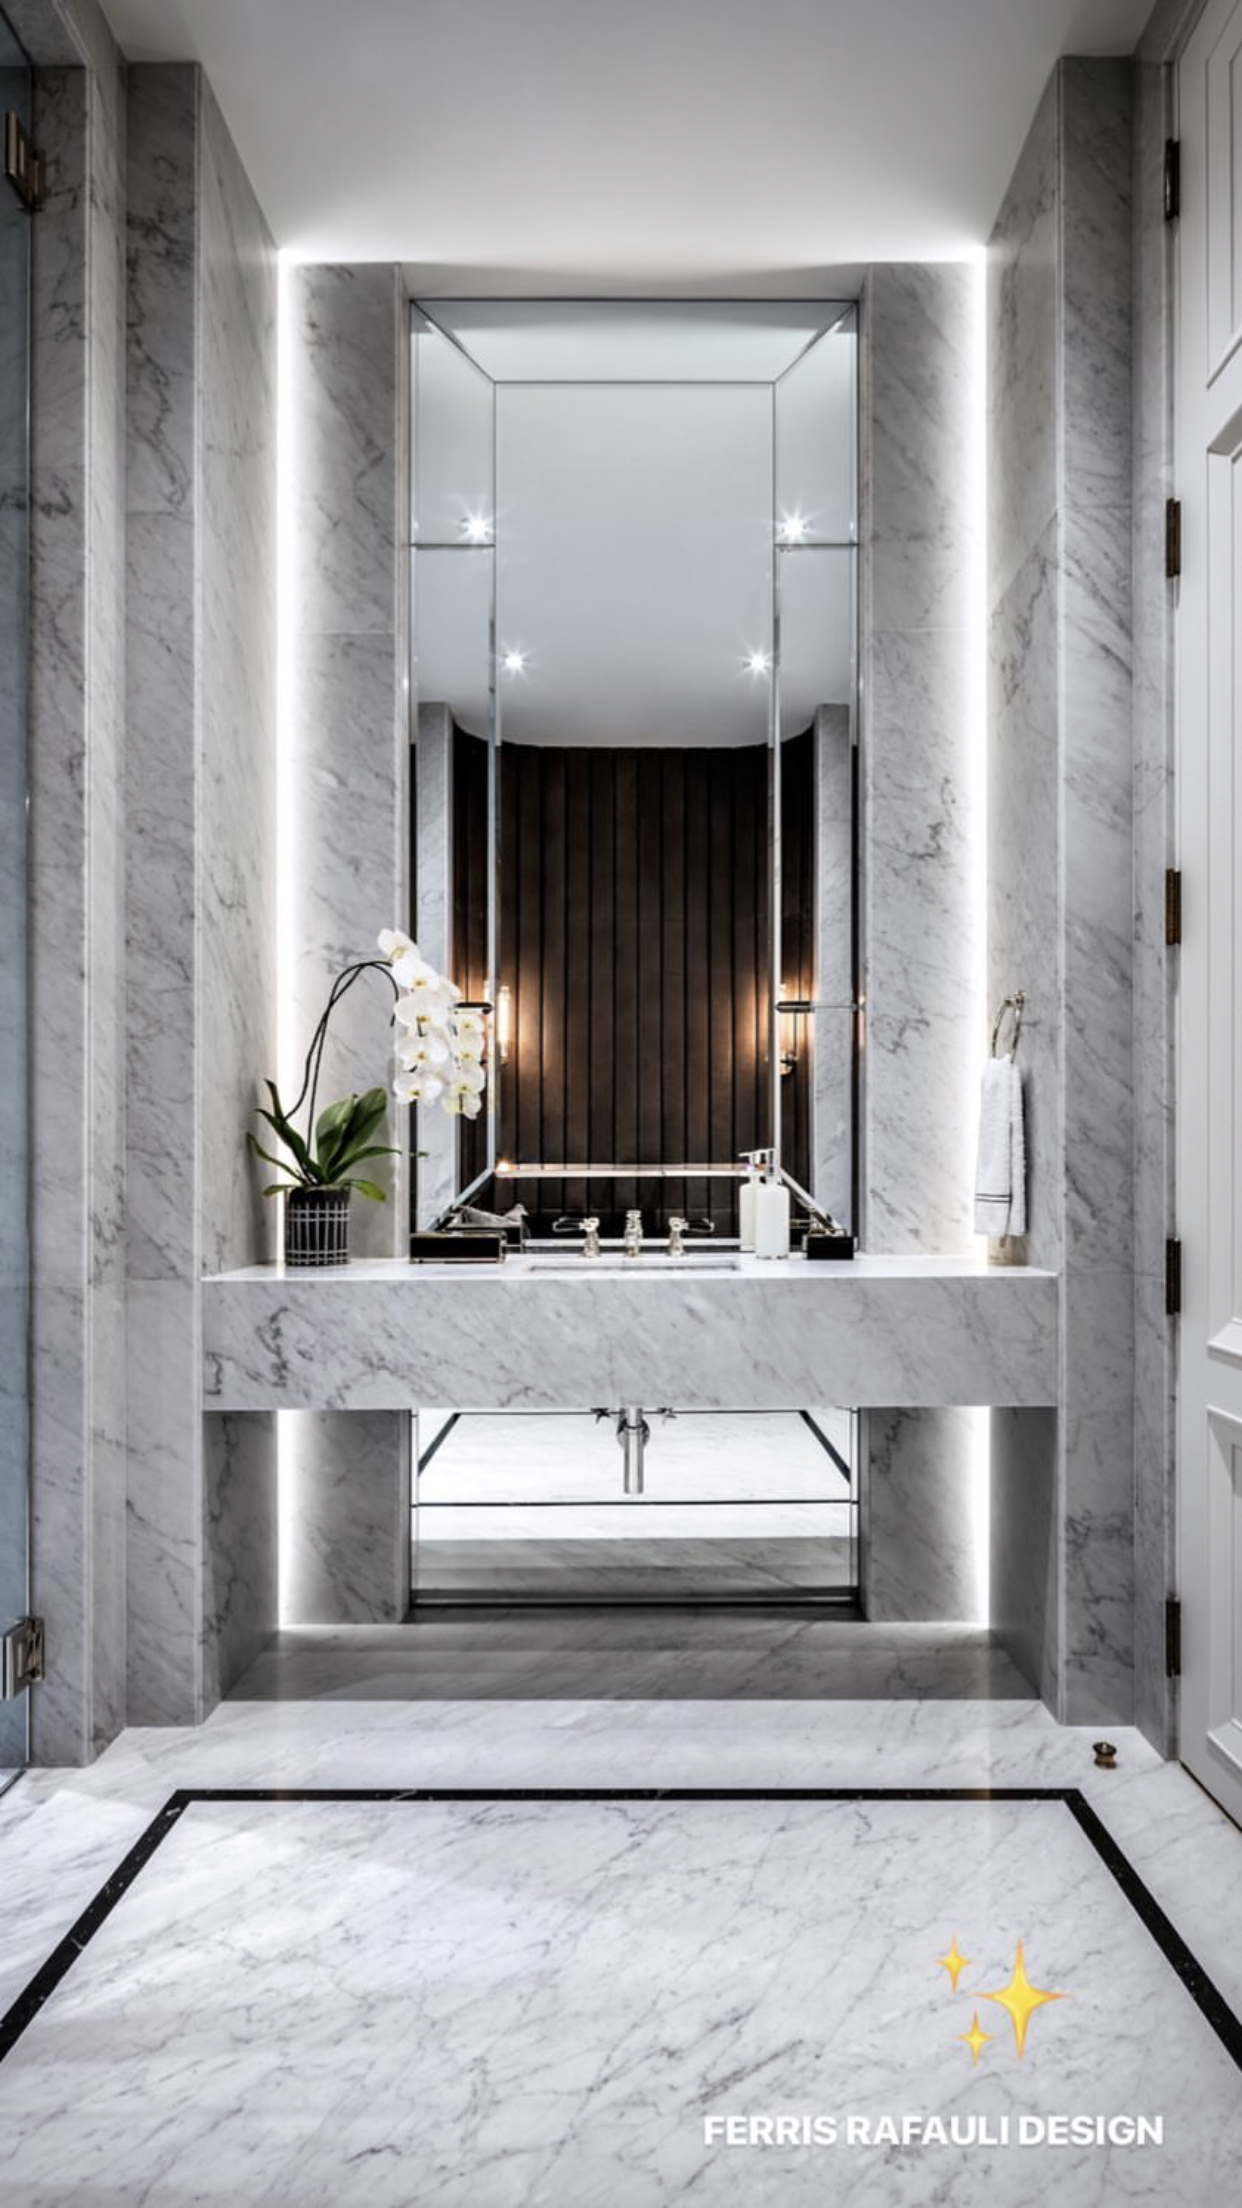 The Marble Is In Charge Right Turn Your Bathroom On An Amazing Marble Bathroom See More At Mai Minimalist Bathroom Design Luxury Powder Room Elegant Bathroom